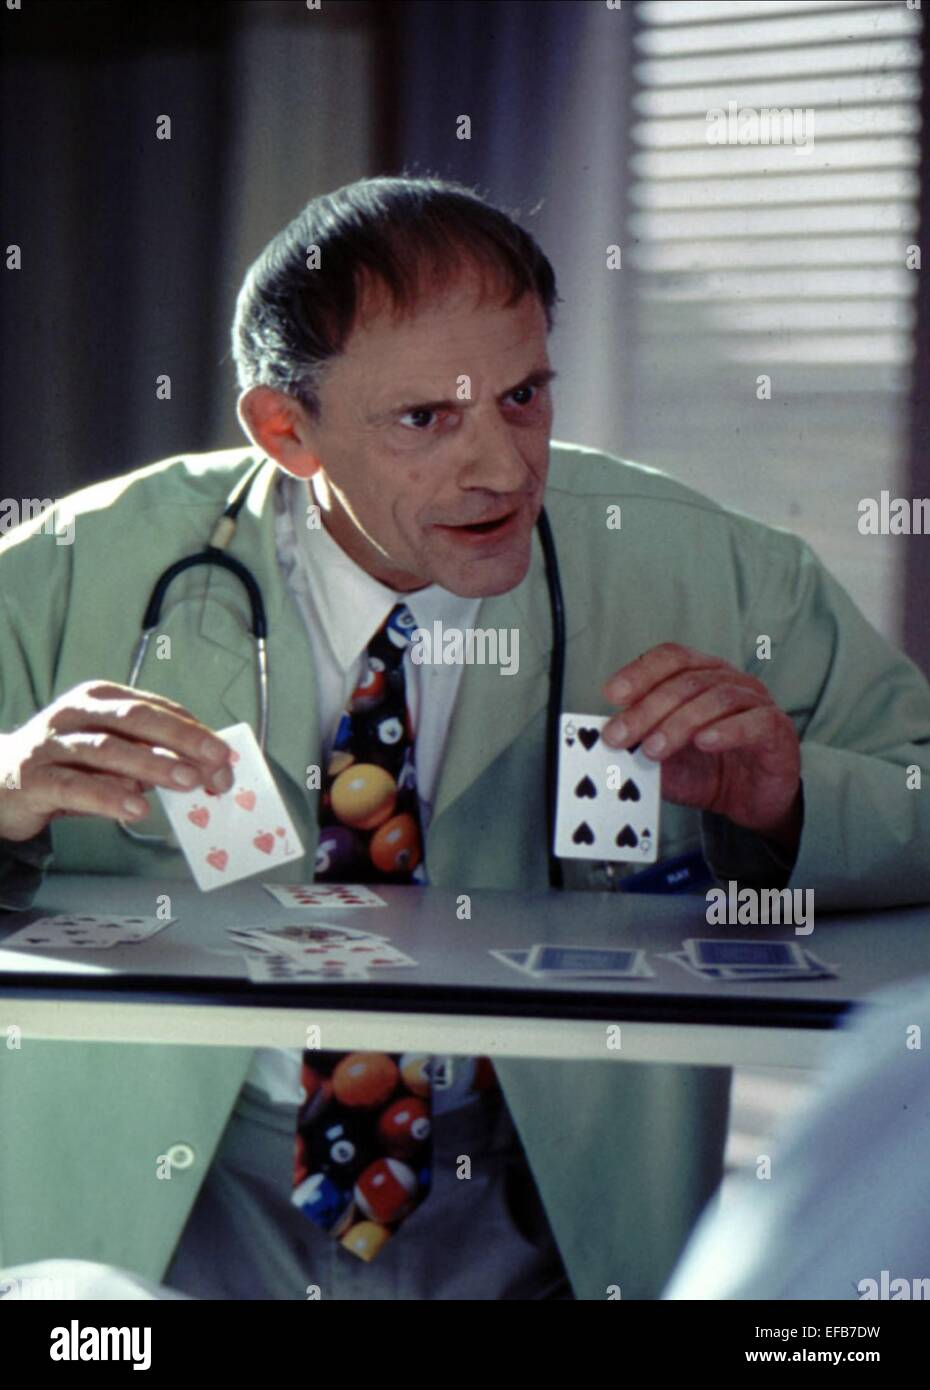 CHRISTOPHER LLOYD INTERSTATE 60: EPISODES OF THE ROAD (2002) - Stock Image